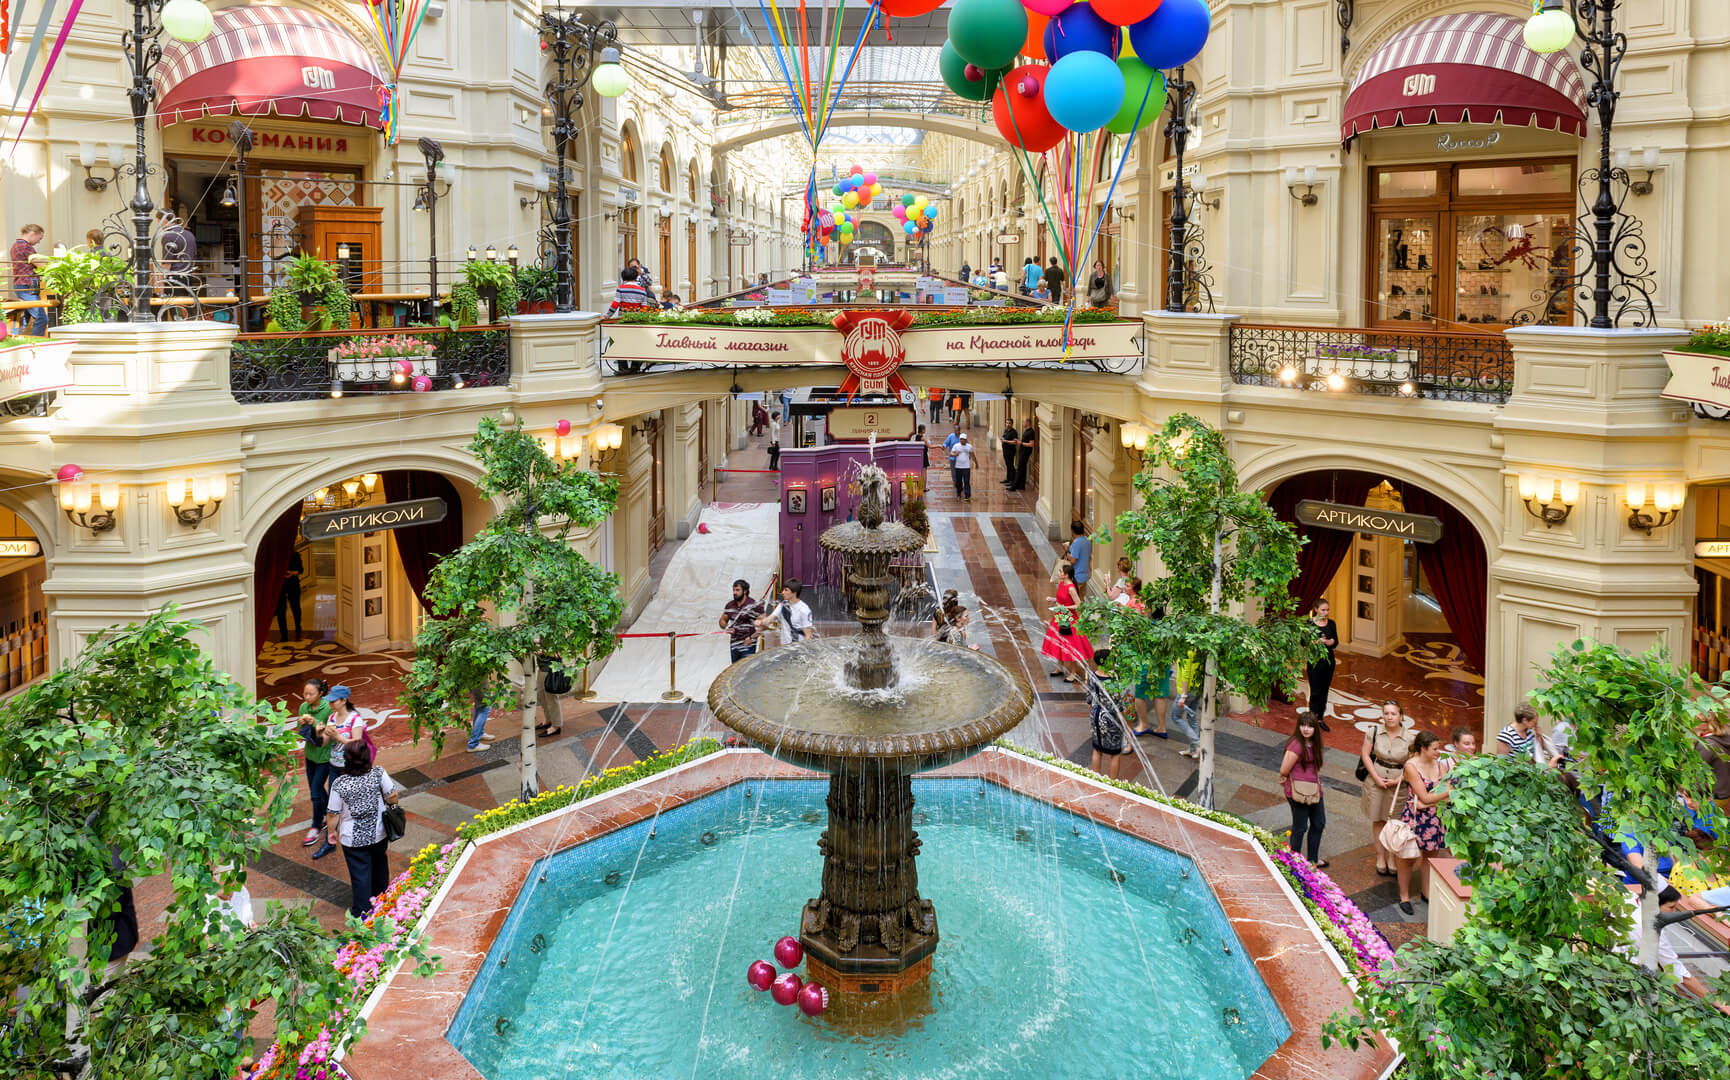 Inside the GUM (main department store) at the Red Square, Russia. GUM is one of the oldest supermarkets in Moscow and tourist attraction. Luxury interior with a nice fountain